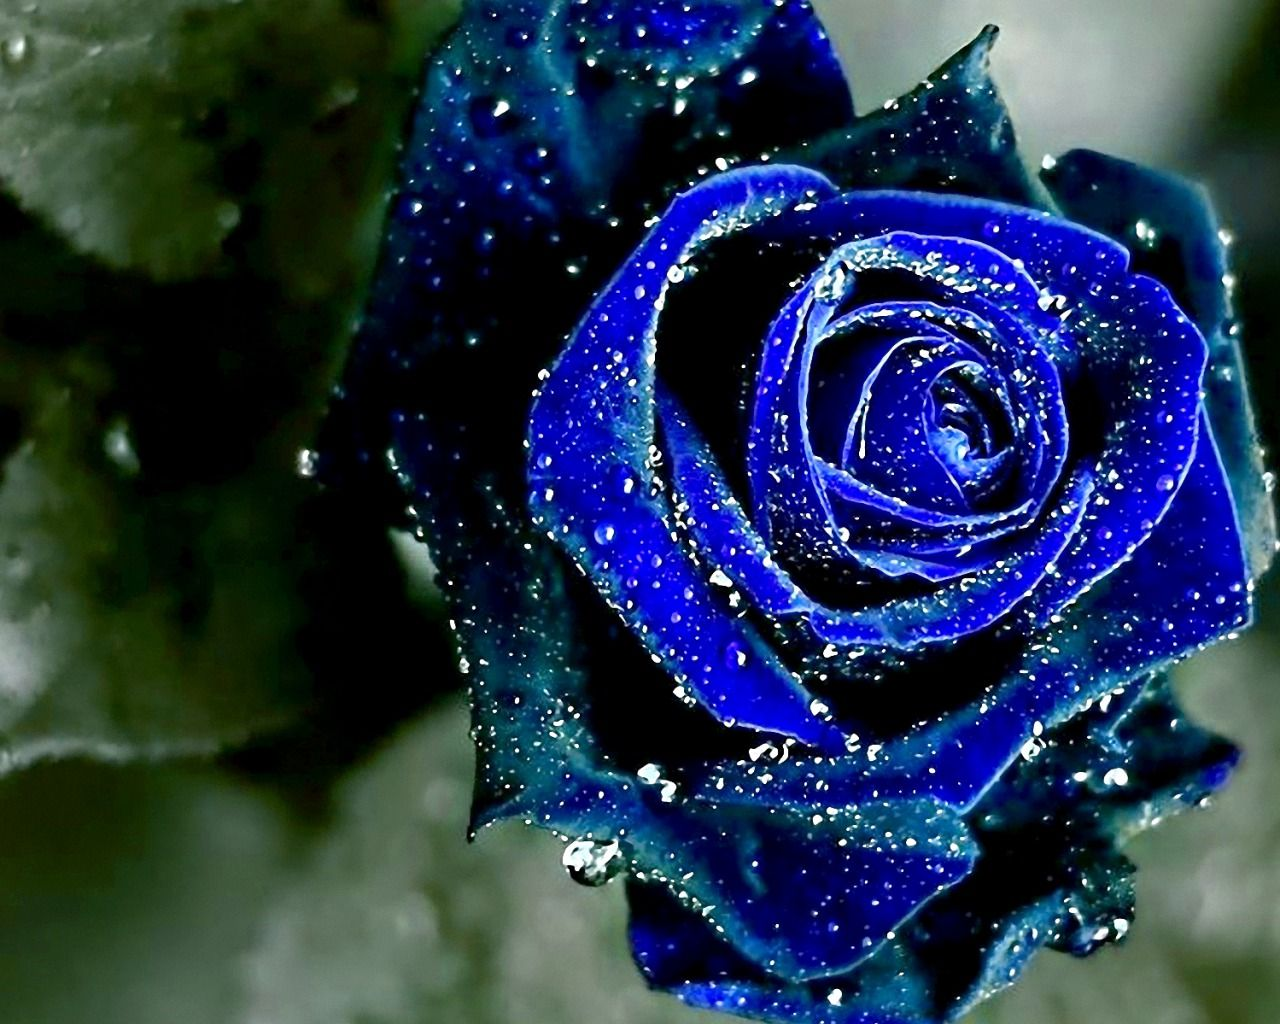 Blue Pretty Flowers The Most Beautiful Flower 2018